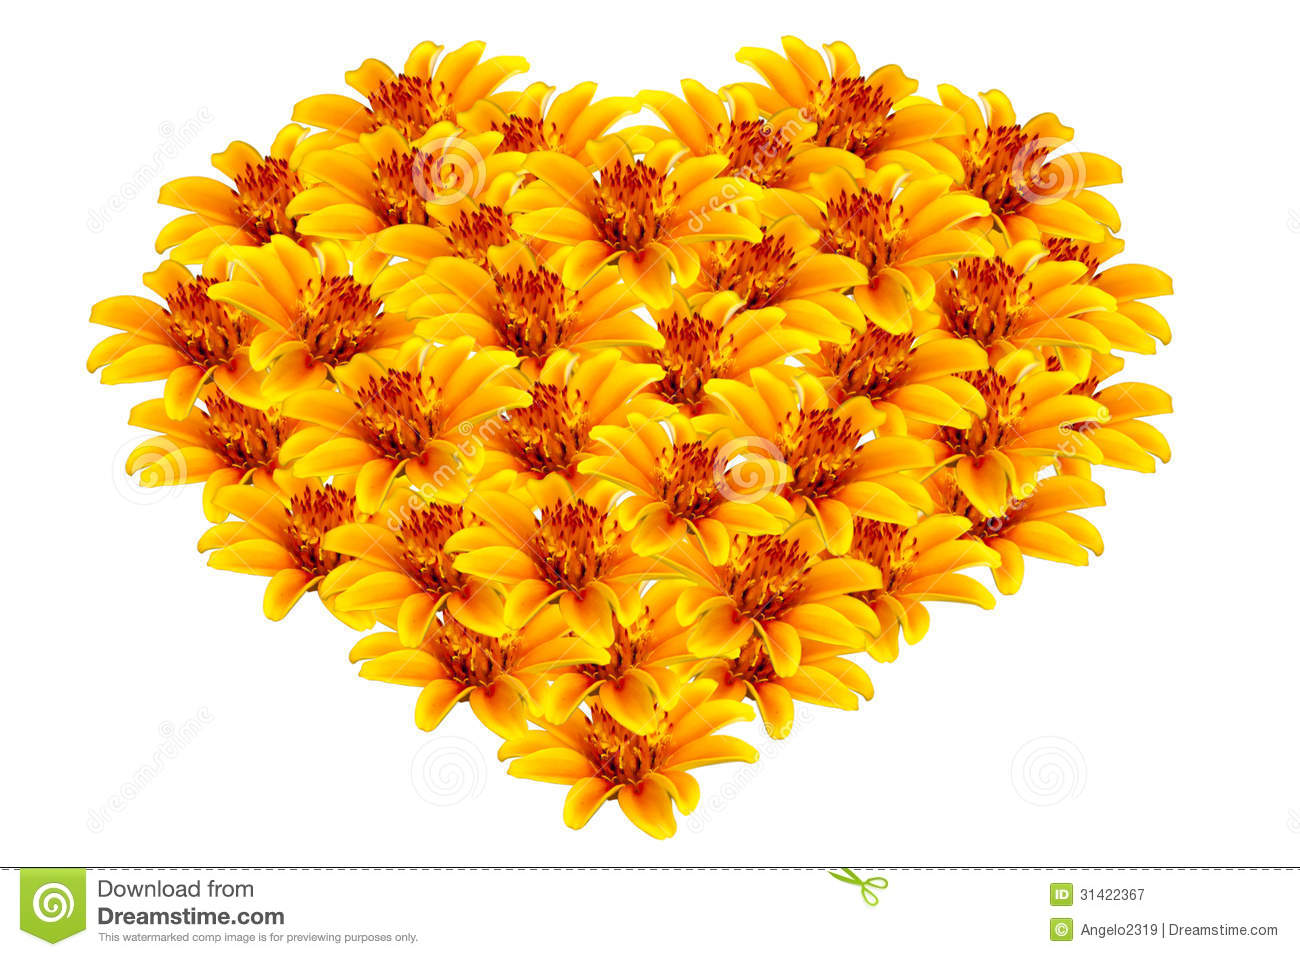 Free pictures of yellow flowers svg library library Beautiful Yellow Flowers Heart-shaped Royalty Free Stock ... svg library library